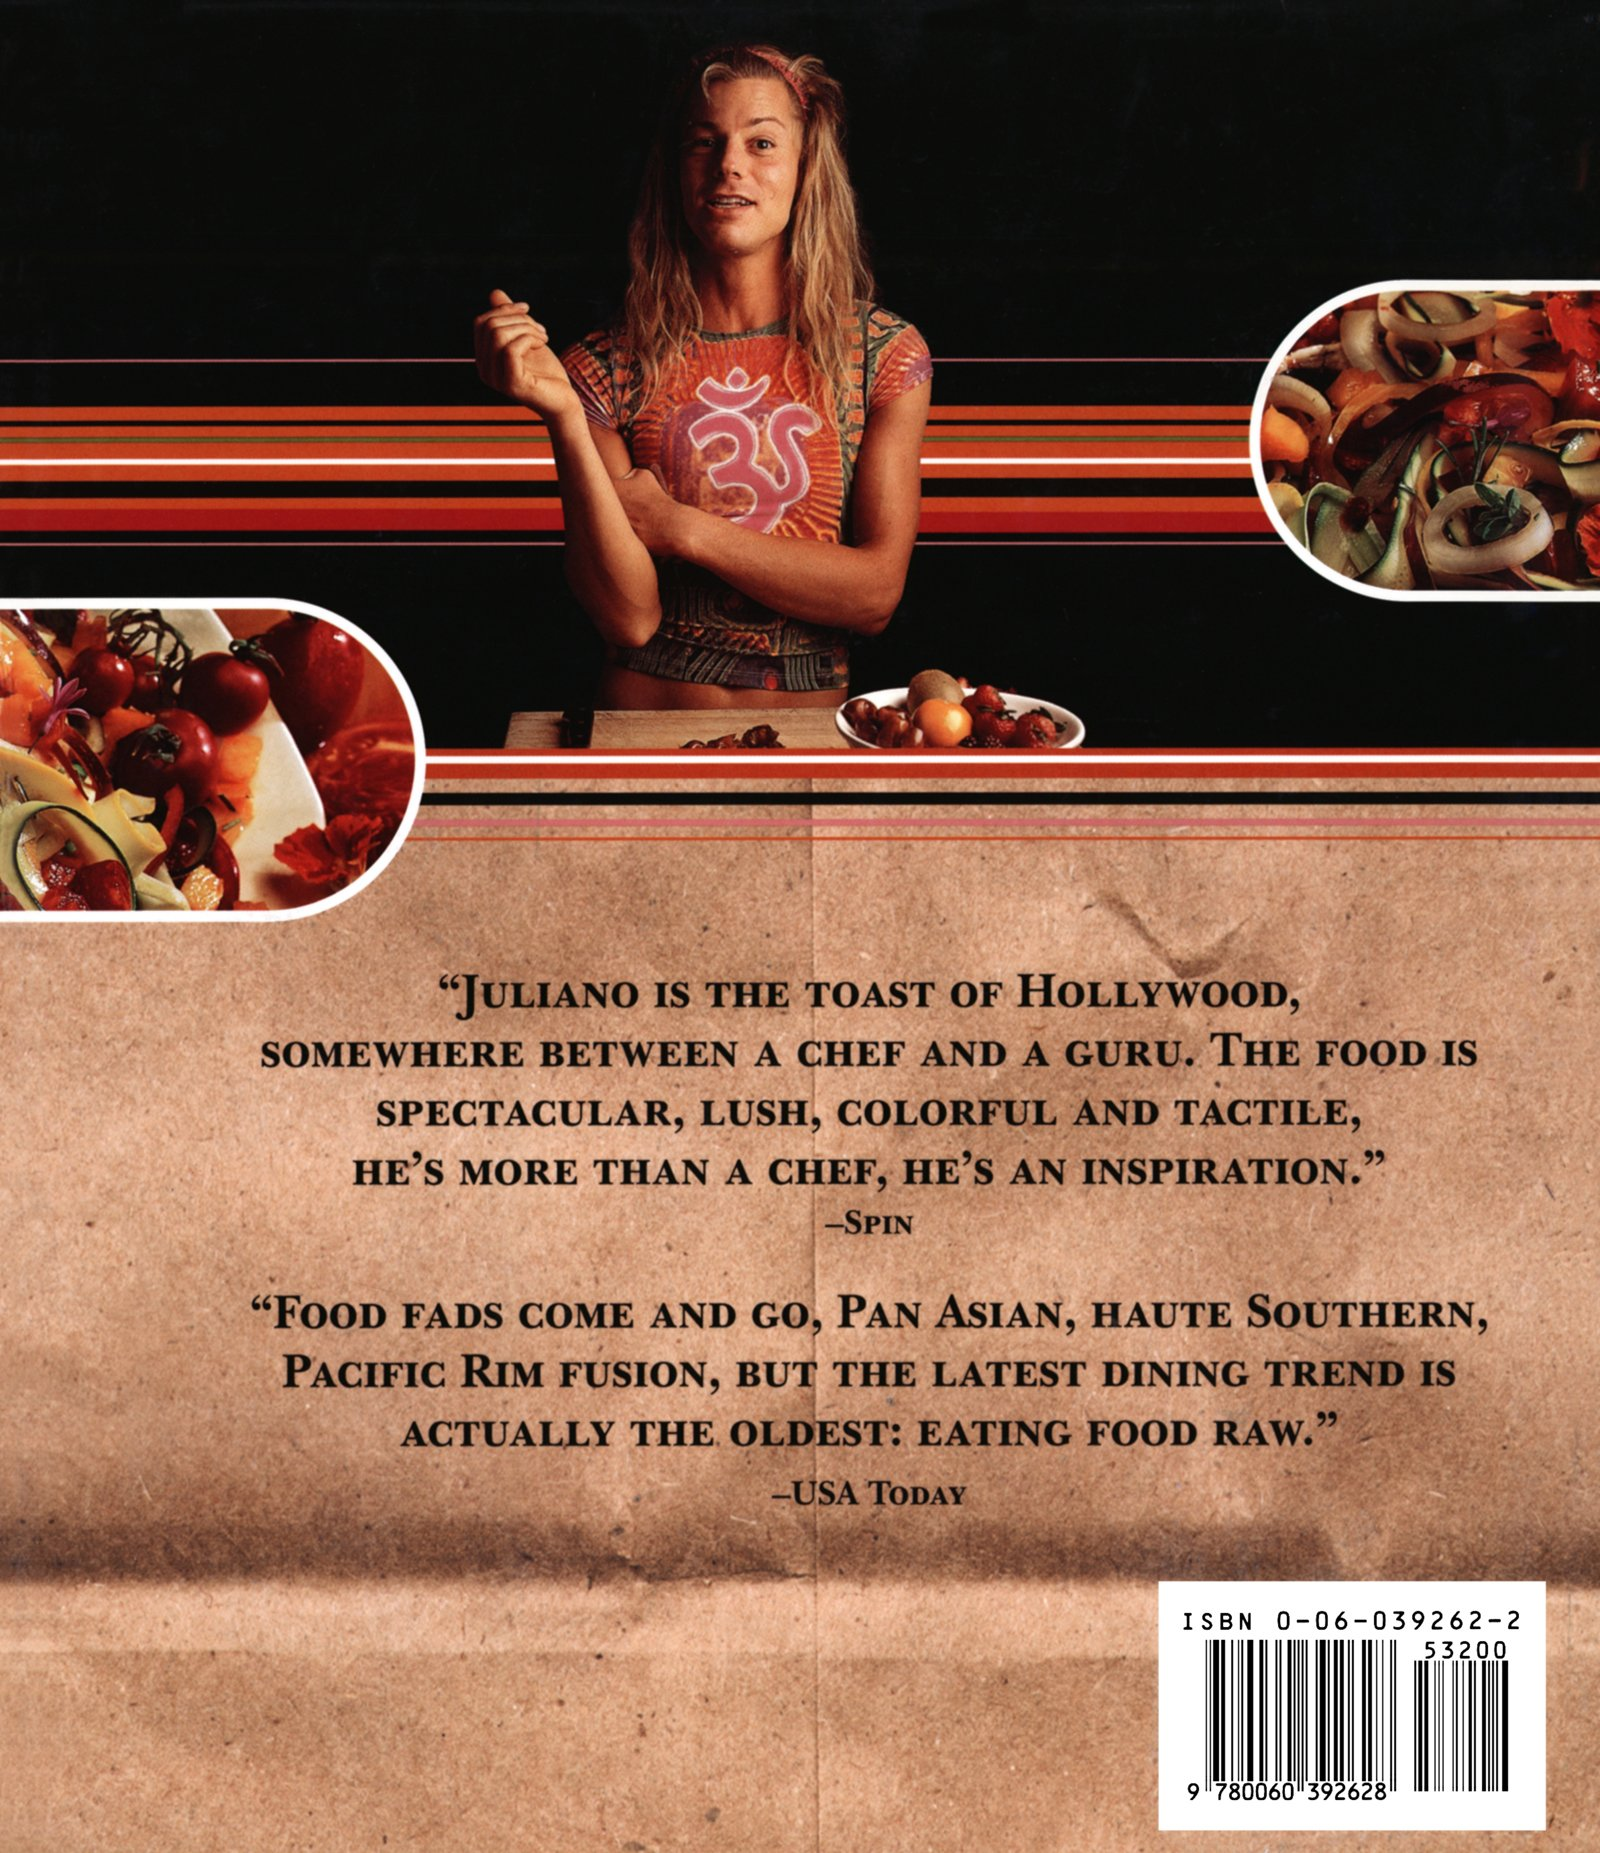 Raw the uncook book new vegetarian food for life juliano brotman raw the uncook book new vegetarian food for life juliano brotman erika lenkert 9780060392628 amazon books forumfinder Images